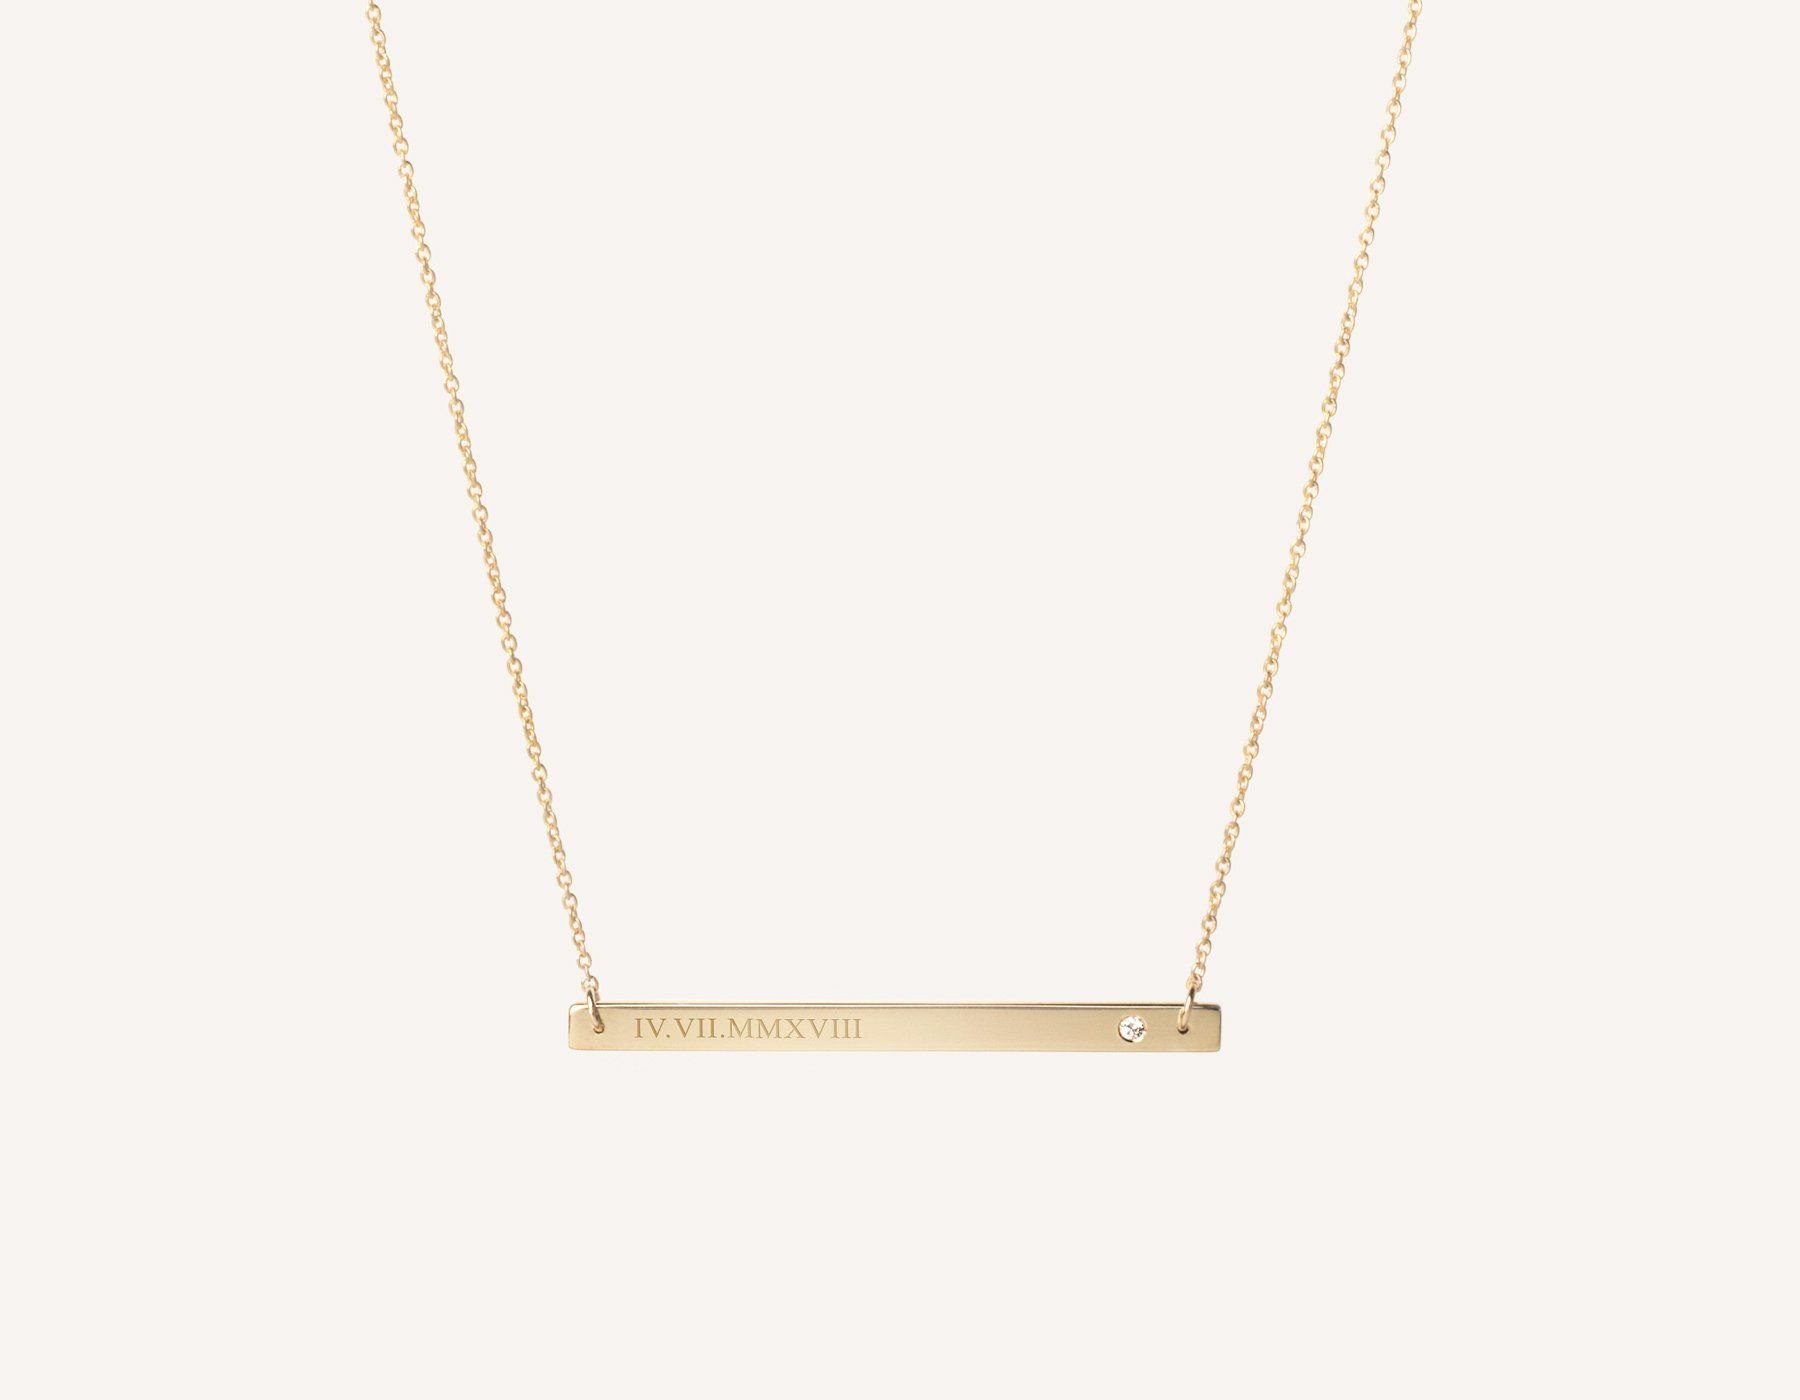 Customized Engraving 14k Solid Gold Bar Necklace With 02 Carat Diamond On Thin Simple 17 Inch Fine Jewellery Necklace Solid Gold Necklace Gold Necklace Women